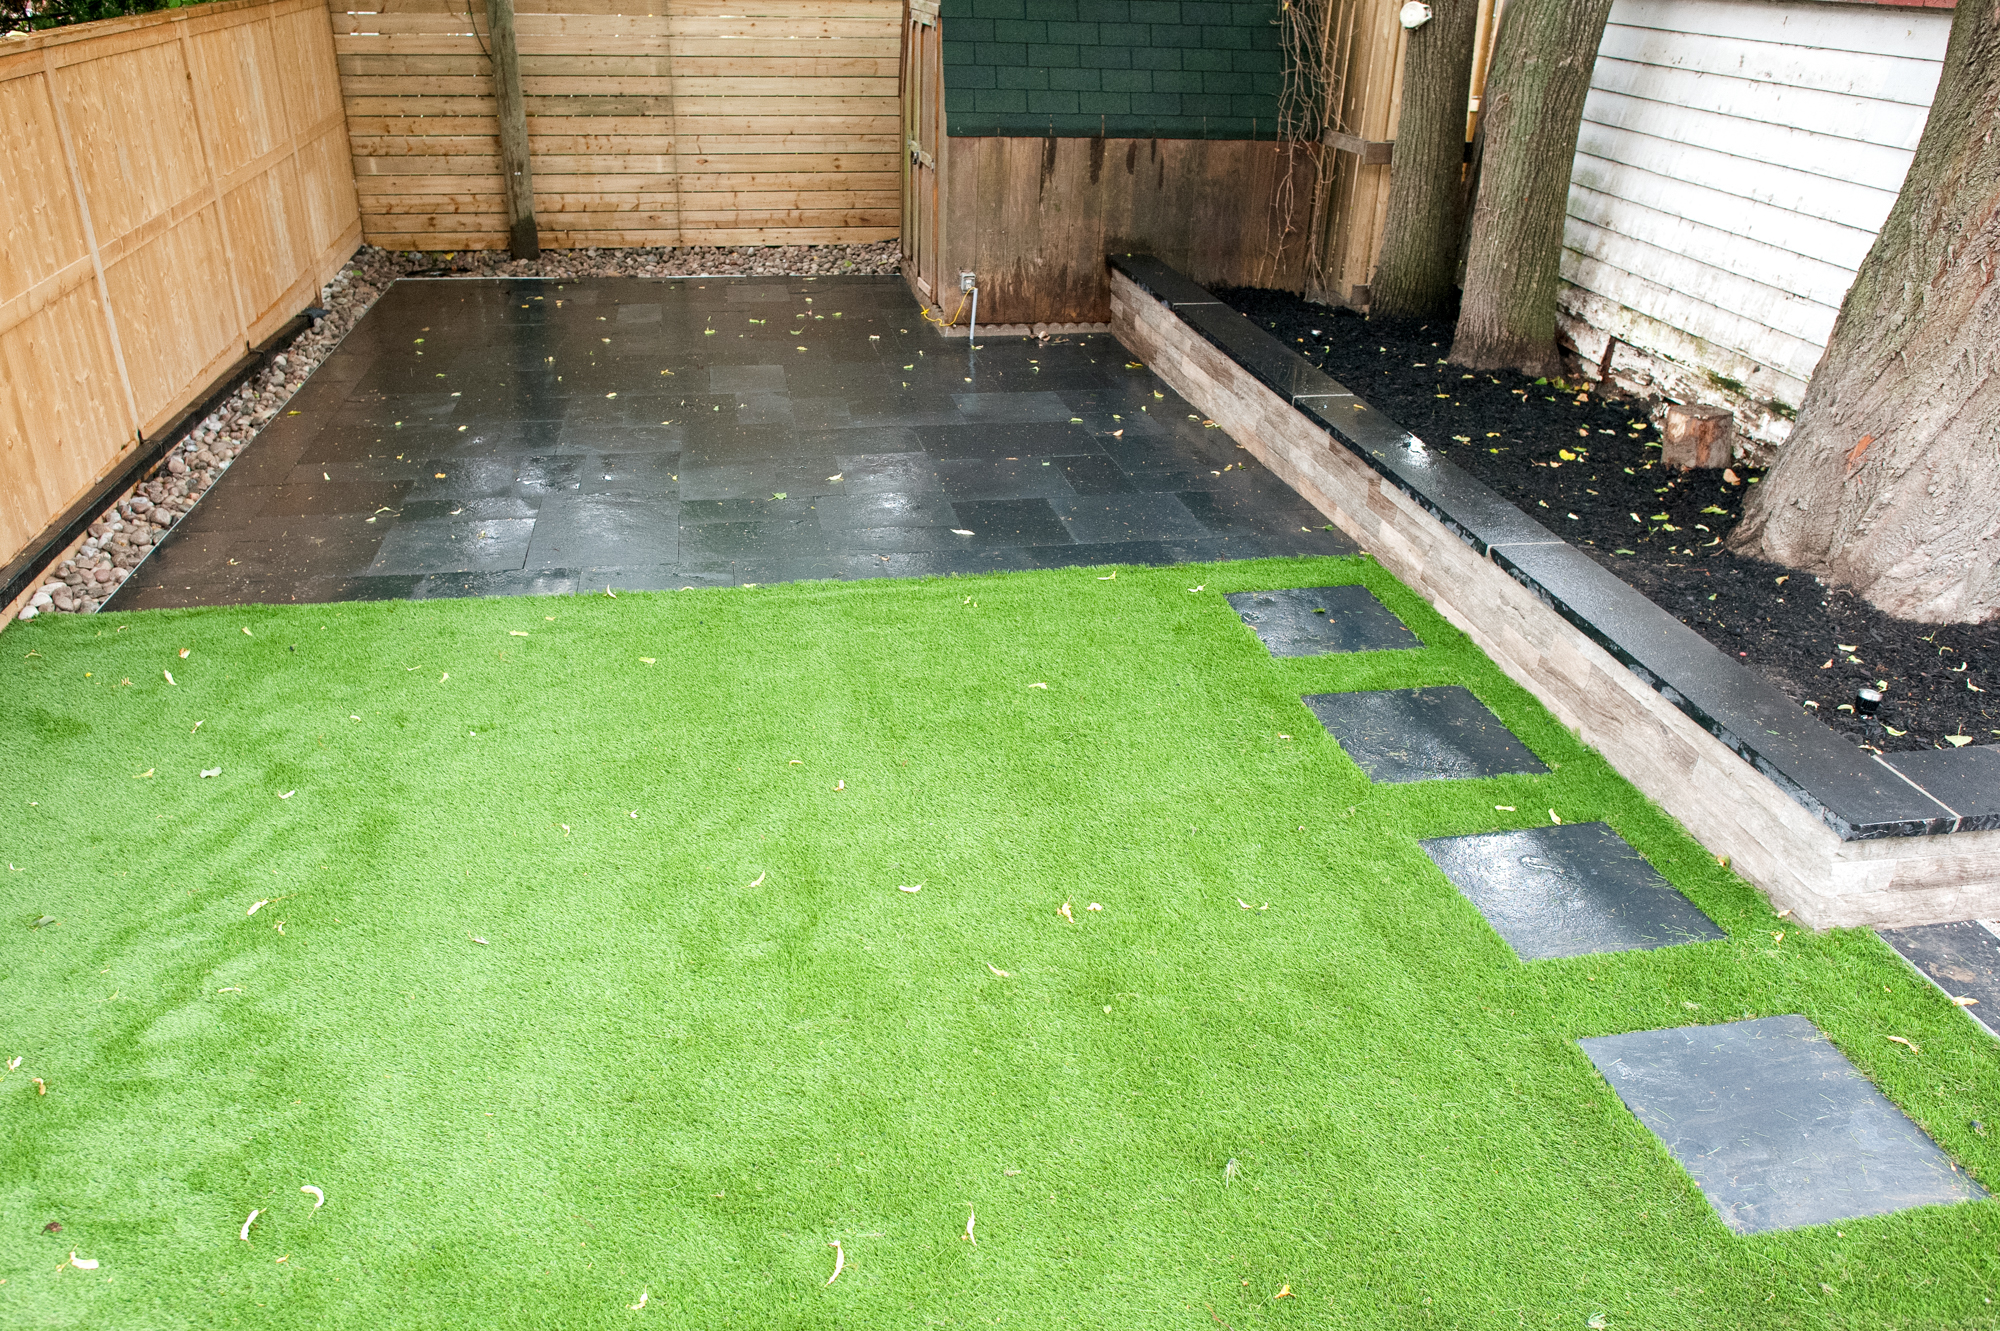 Completed Project - Turf Overview